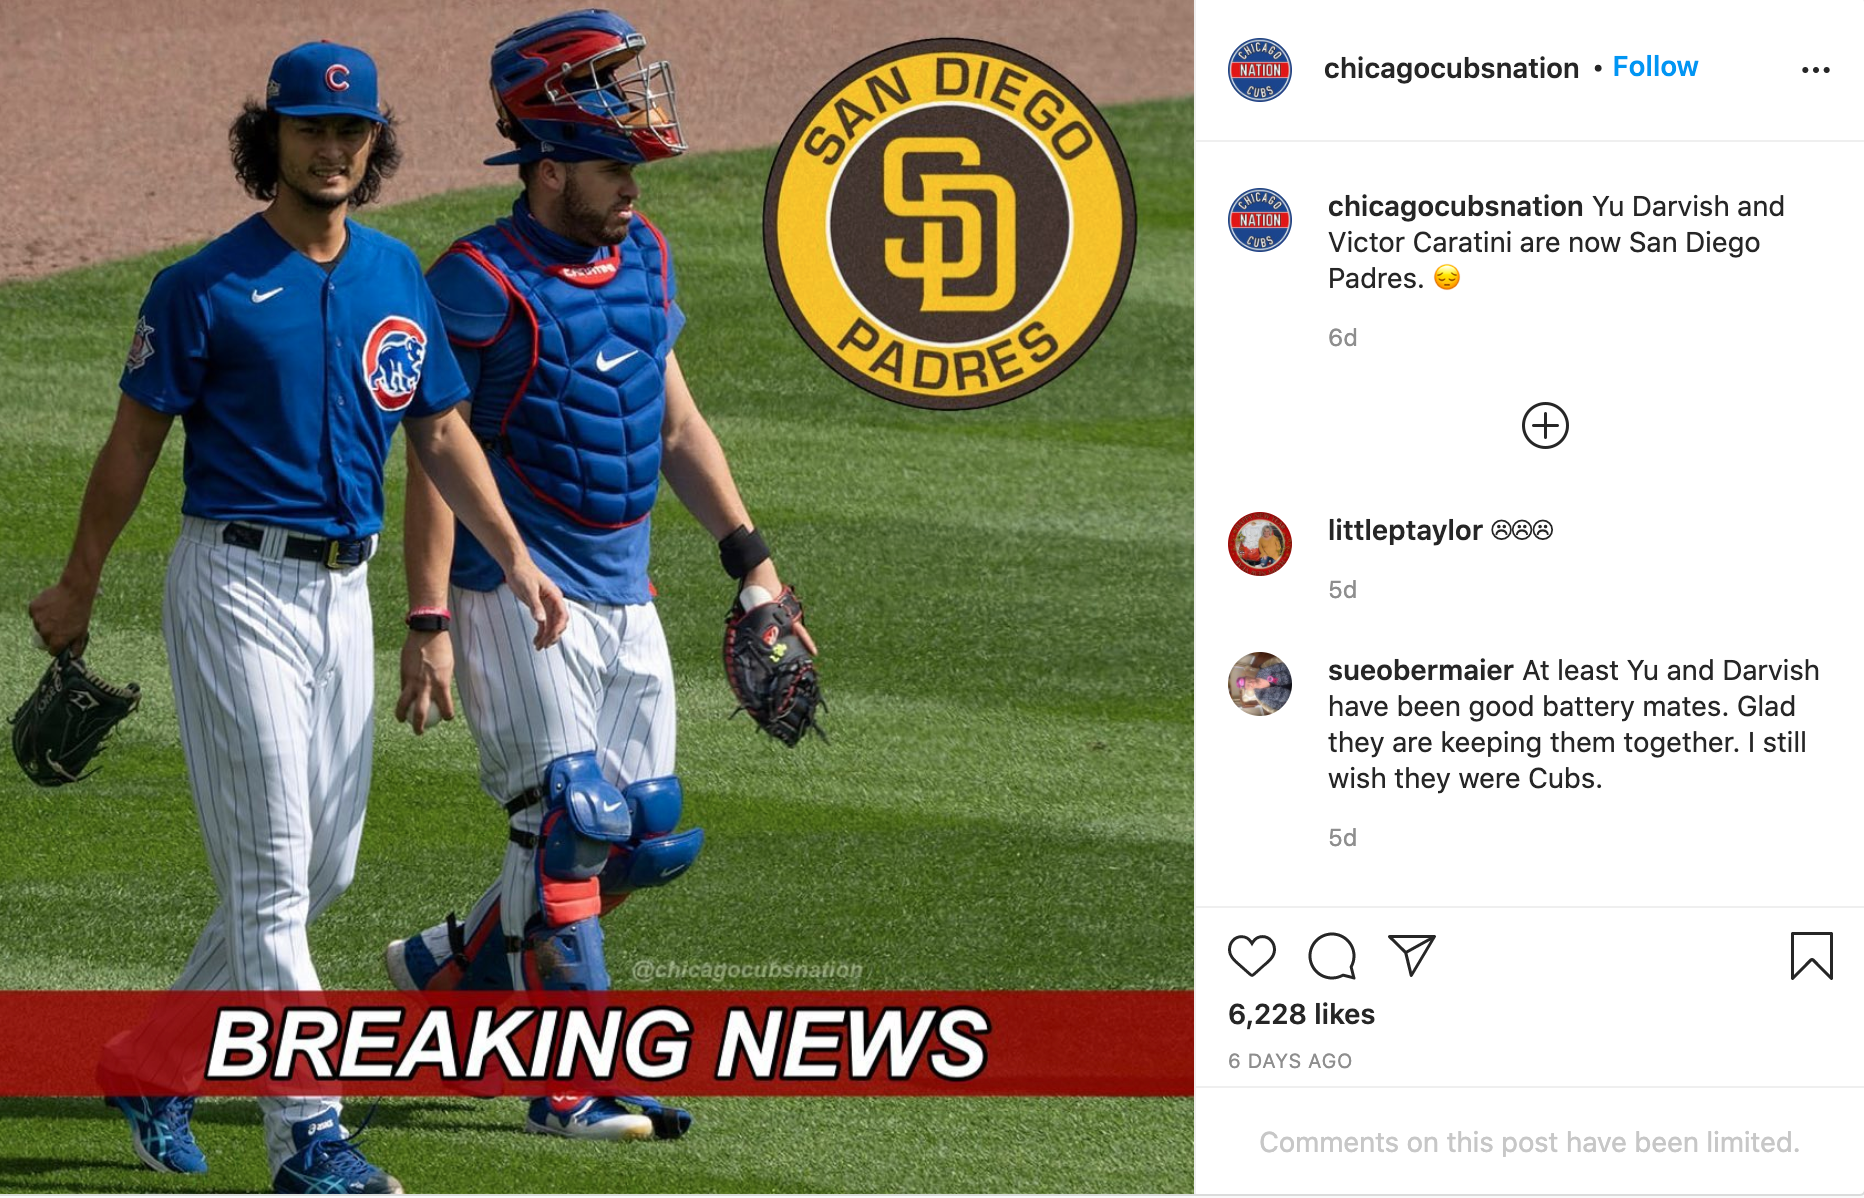 San-Diego-Padres-Insta-Post-1